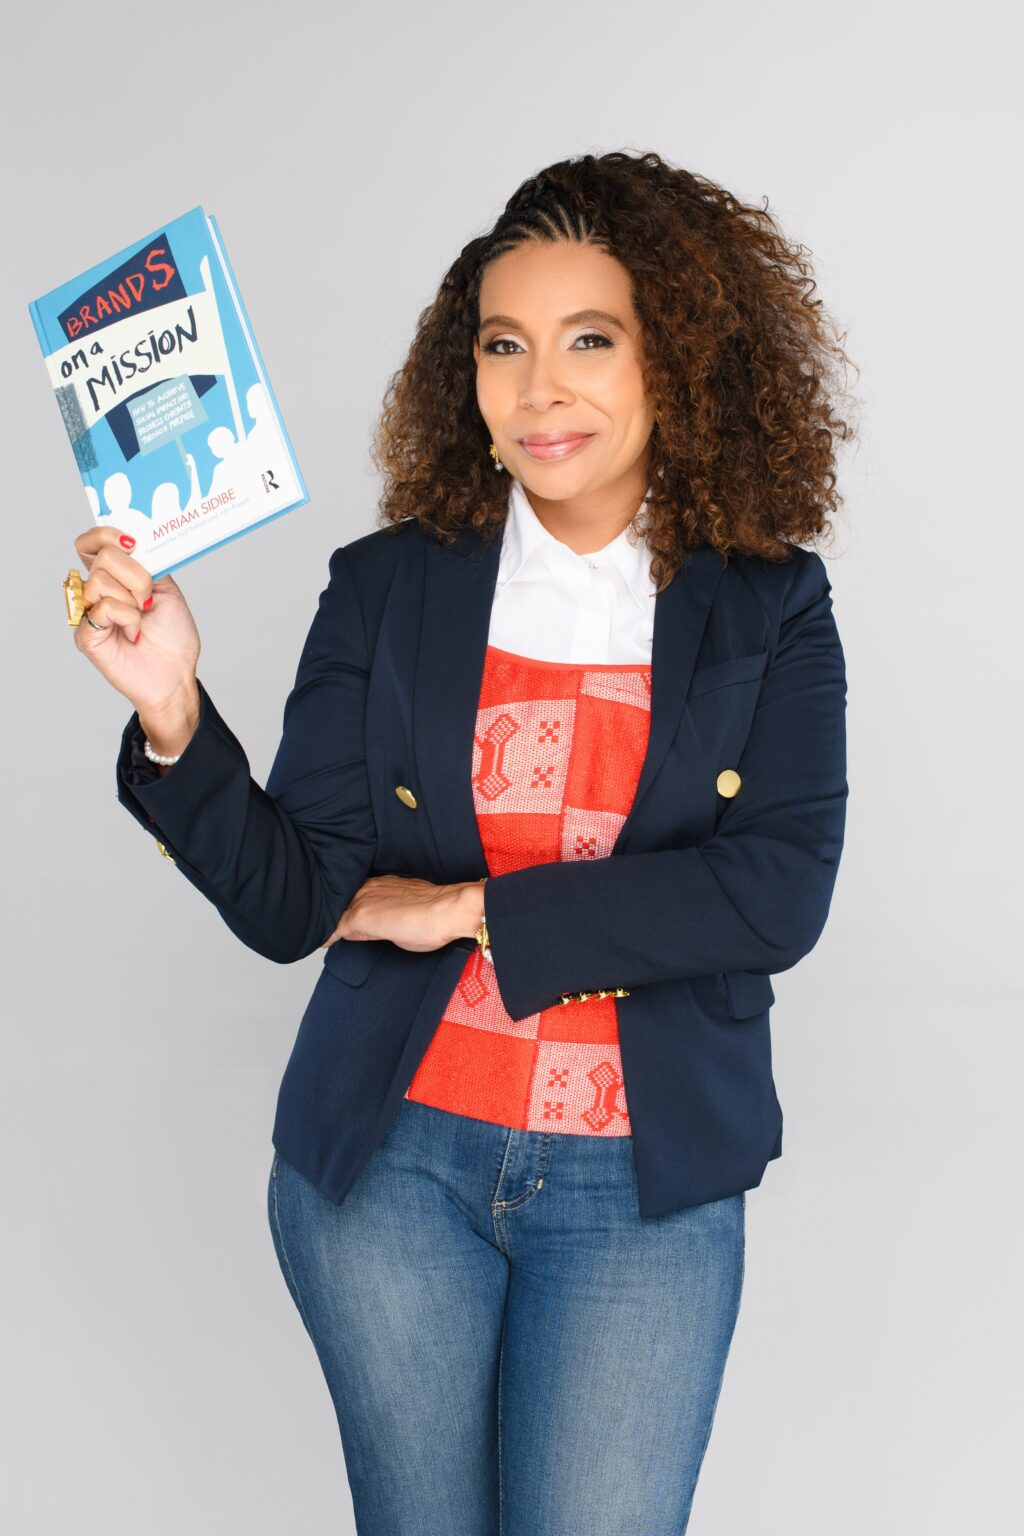 Dr Myriam Assa Sidibe is an author and leading experts of brands that drive health and well-being through mass behavioural change